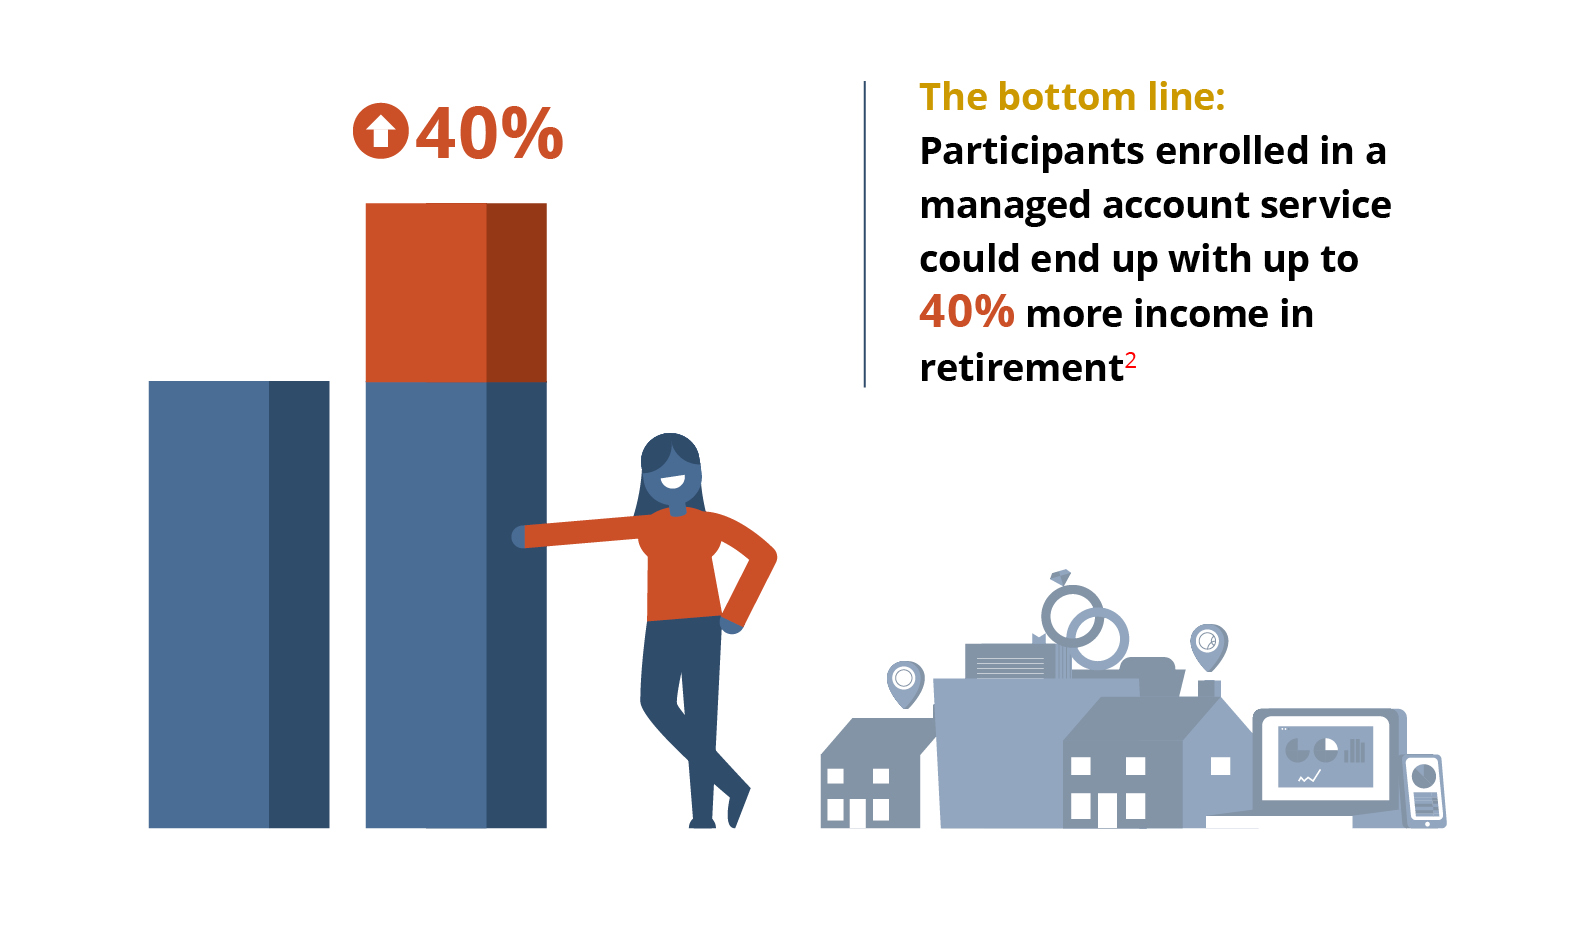 The bottom line: For most participants, the use of multiple data points coupled with ongoing professional management leads to 40% more income in retirement